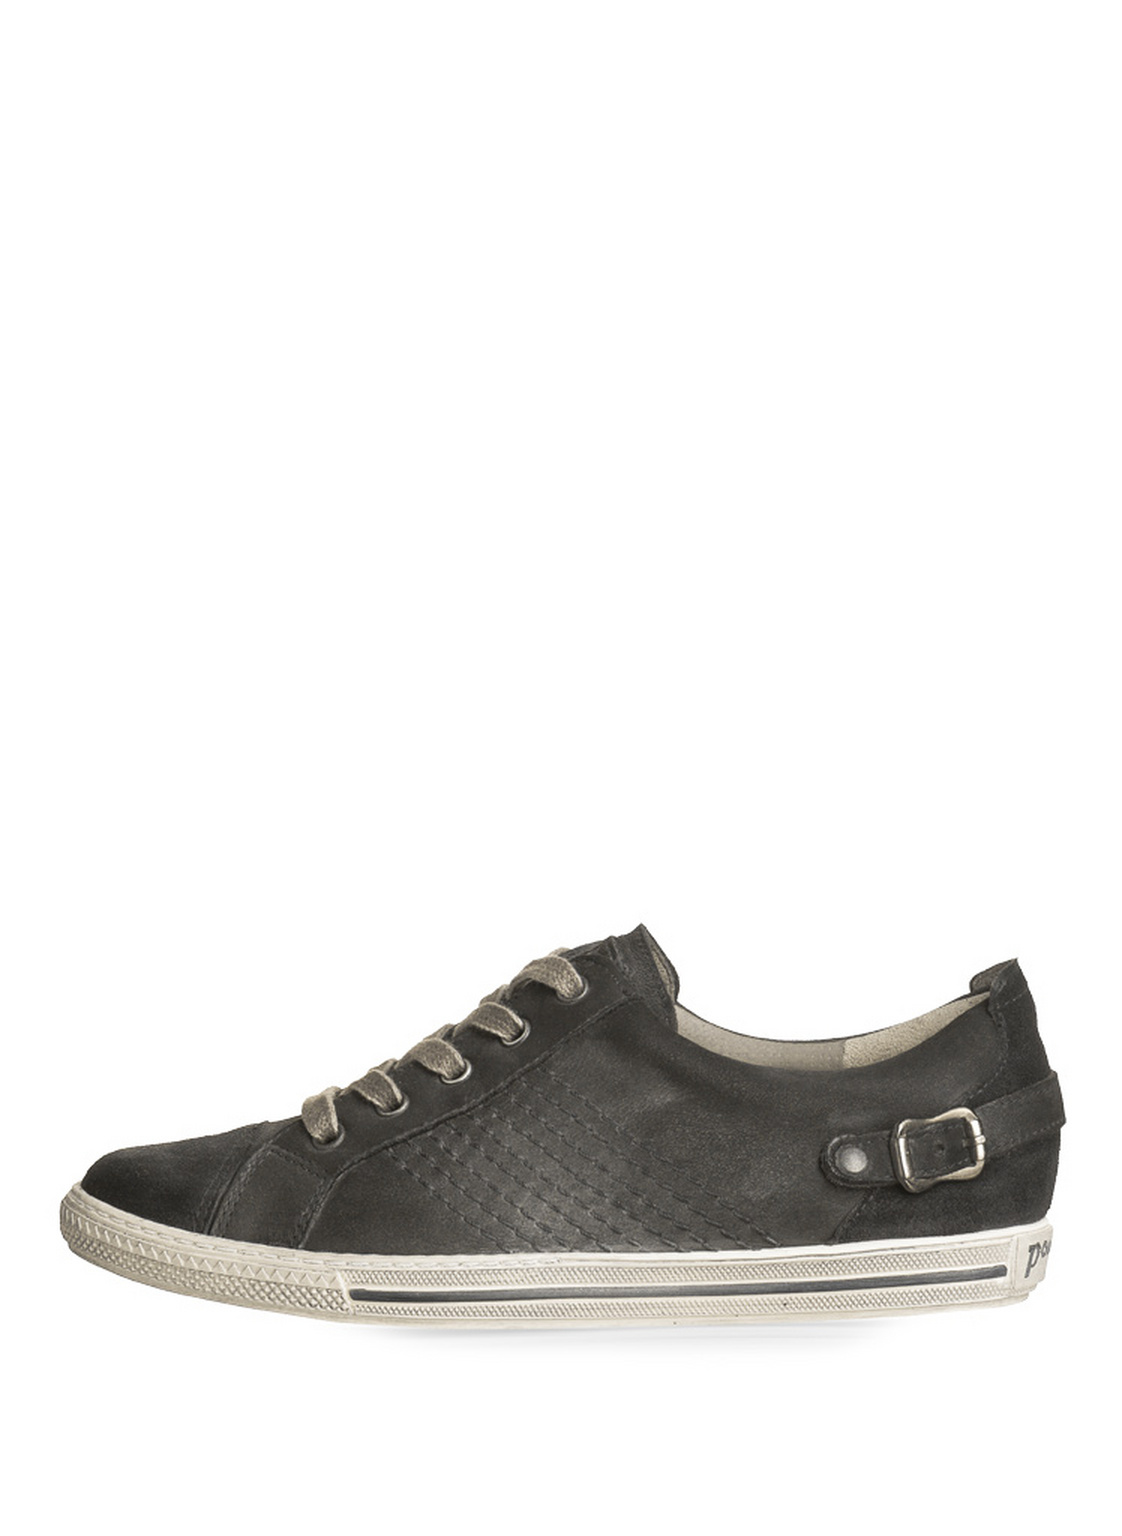 paul green Sneaker schwarz